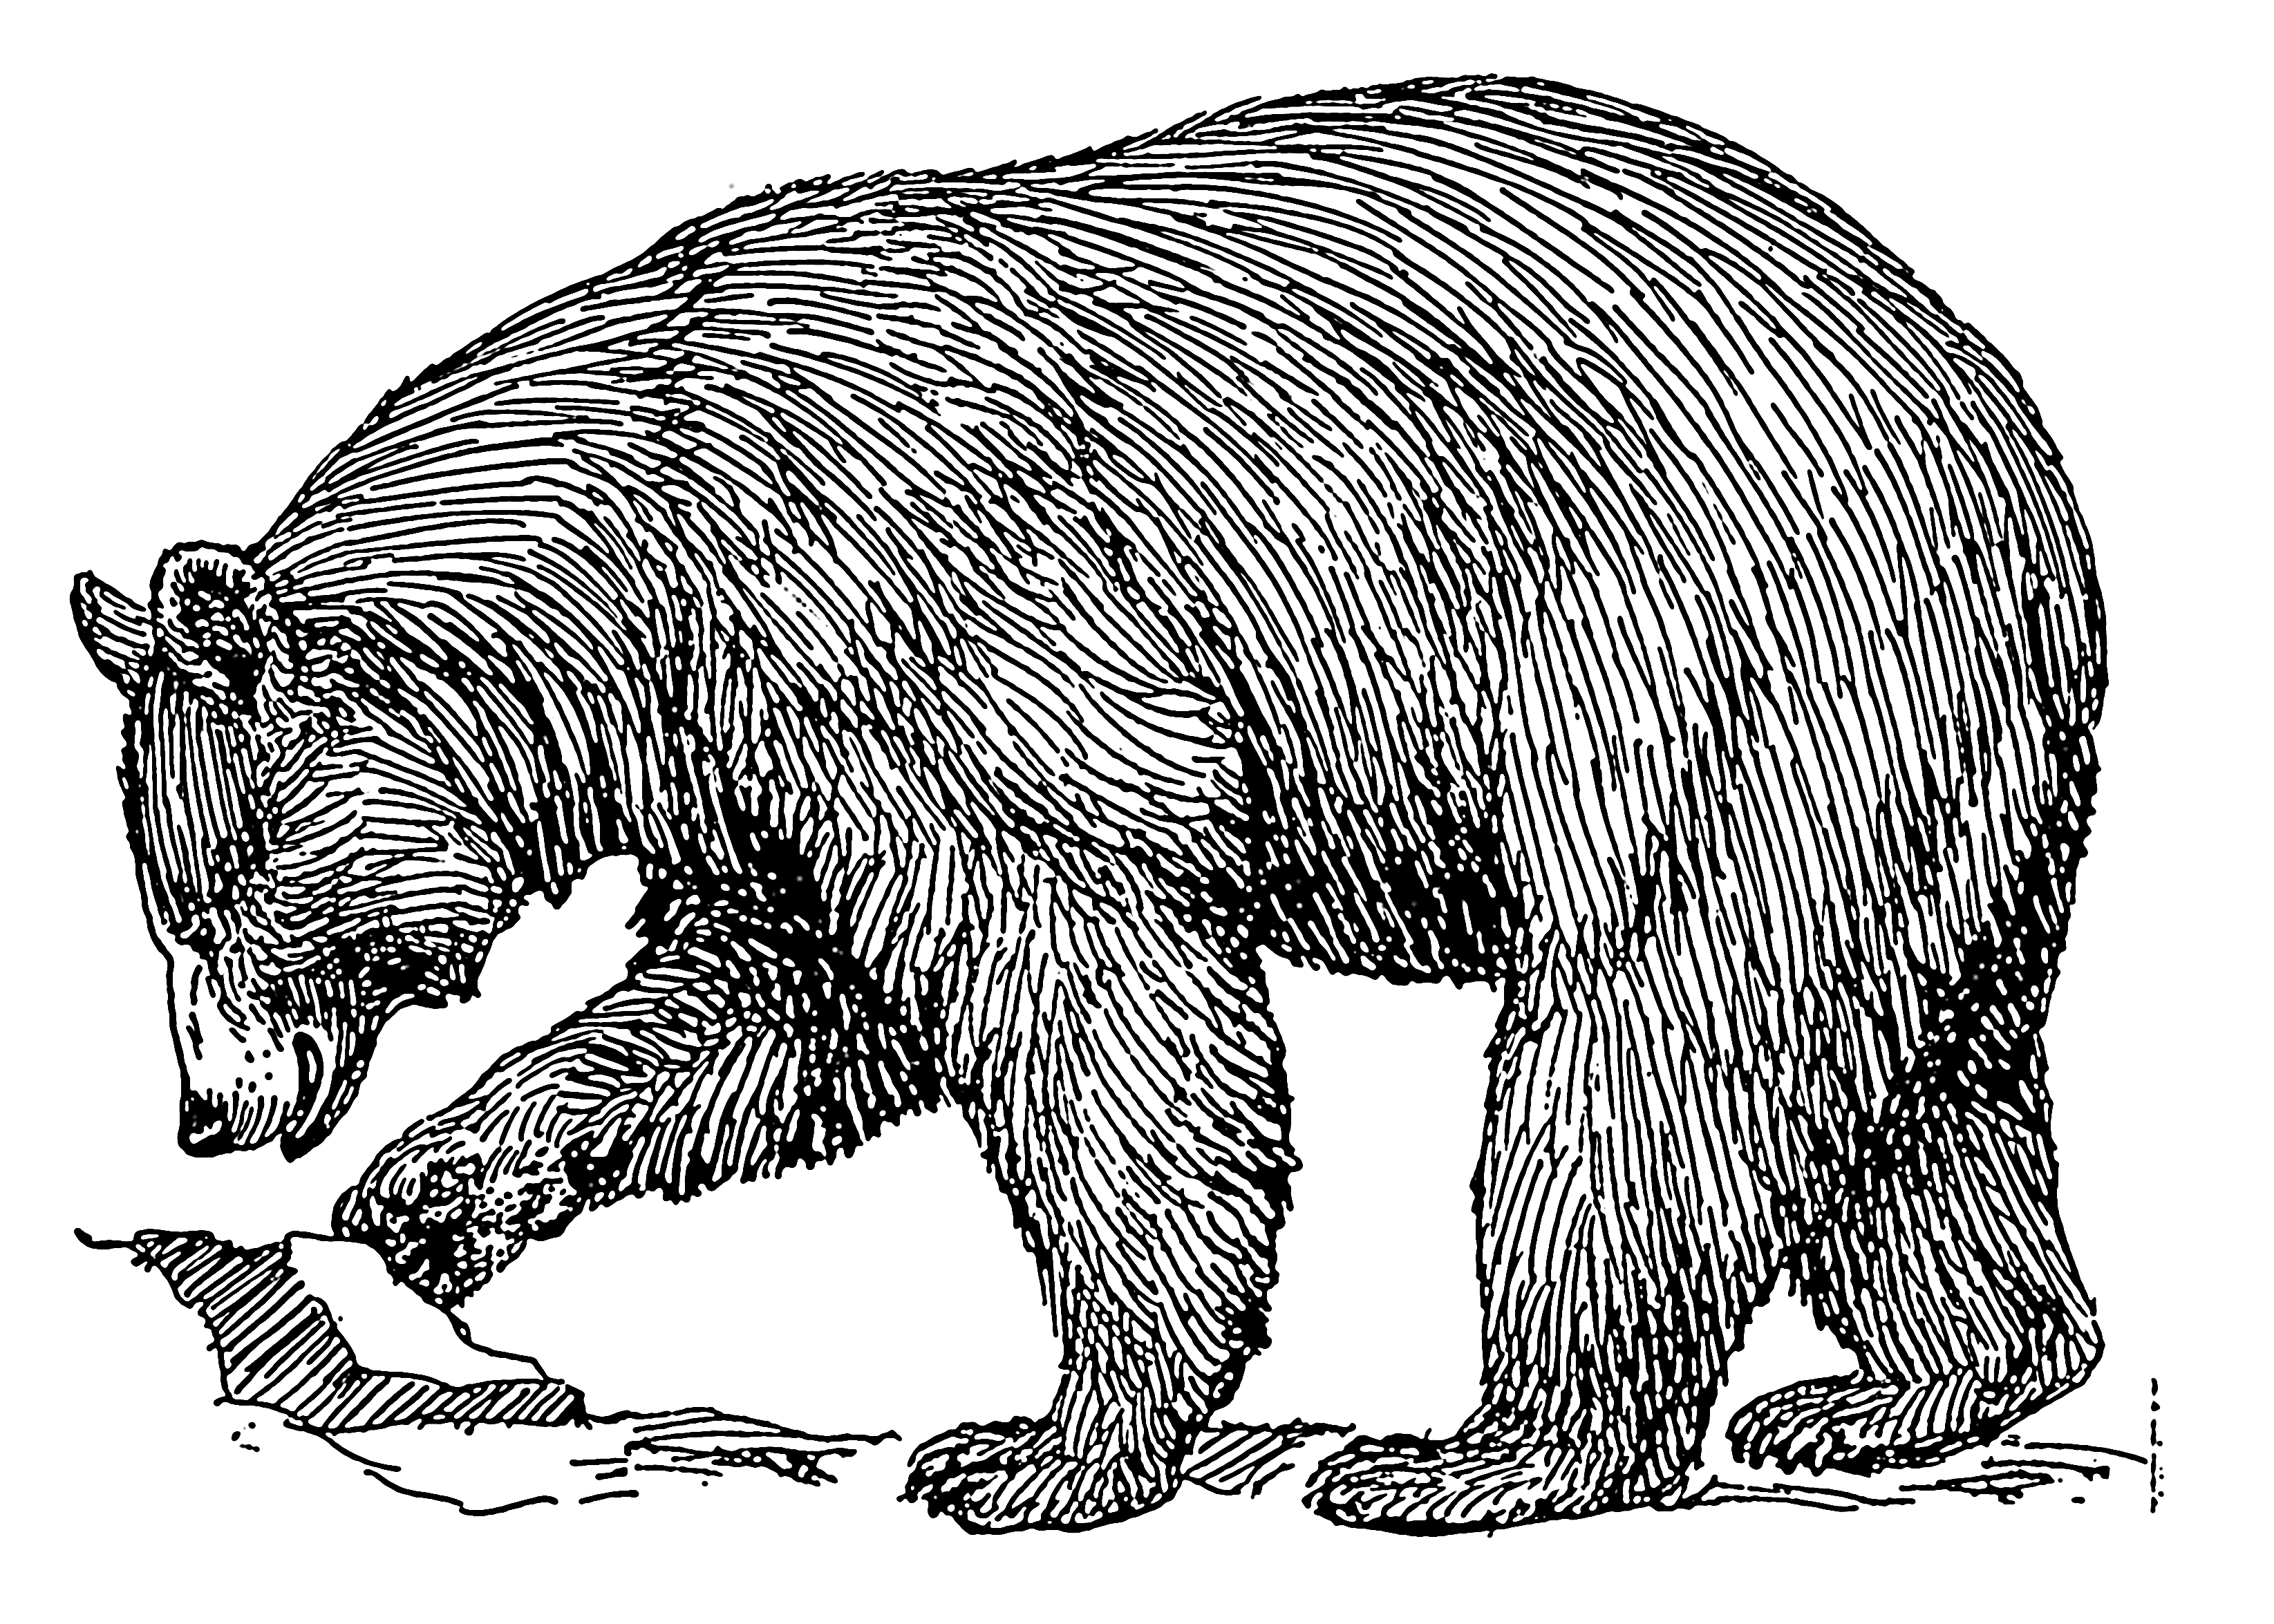 Bear clip art realistic. Bears drawing free download